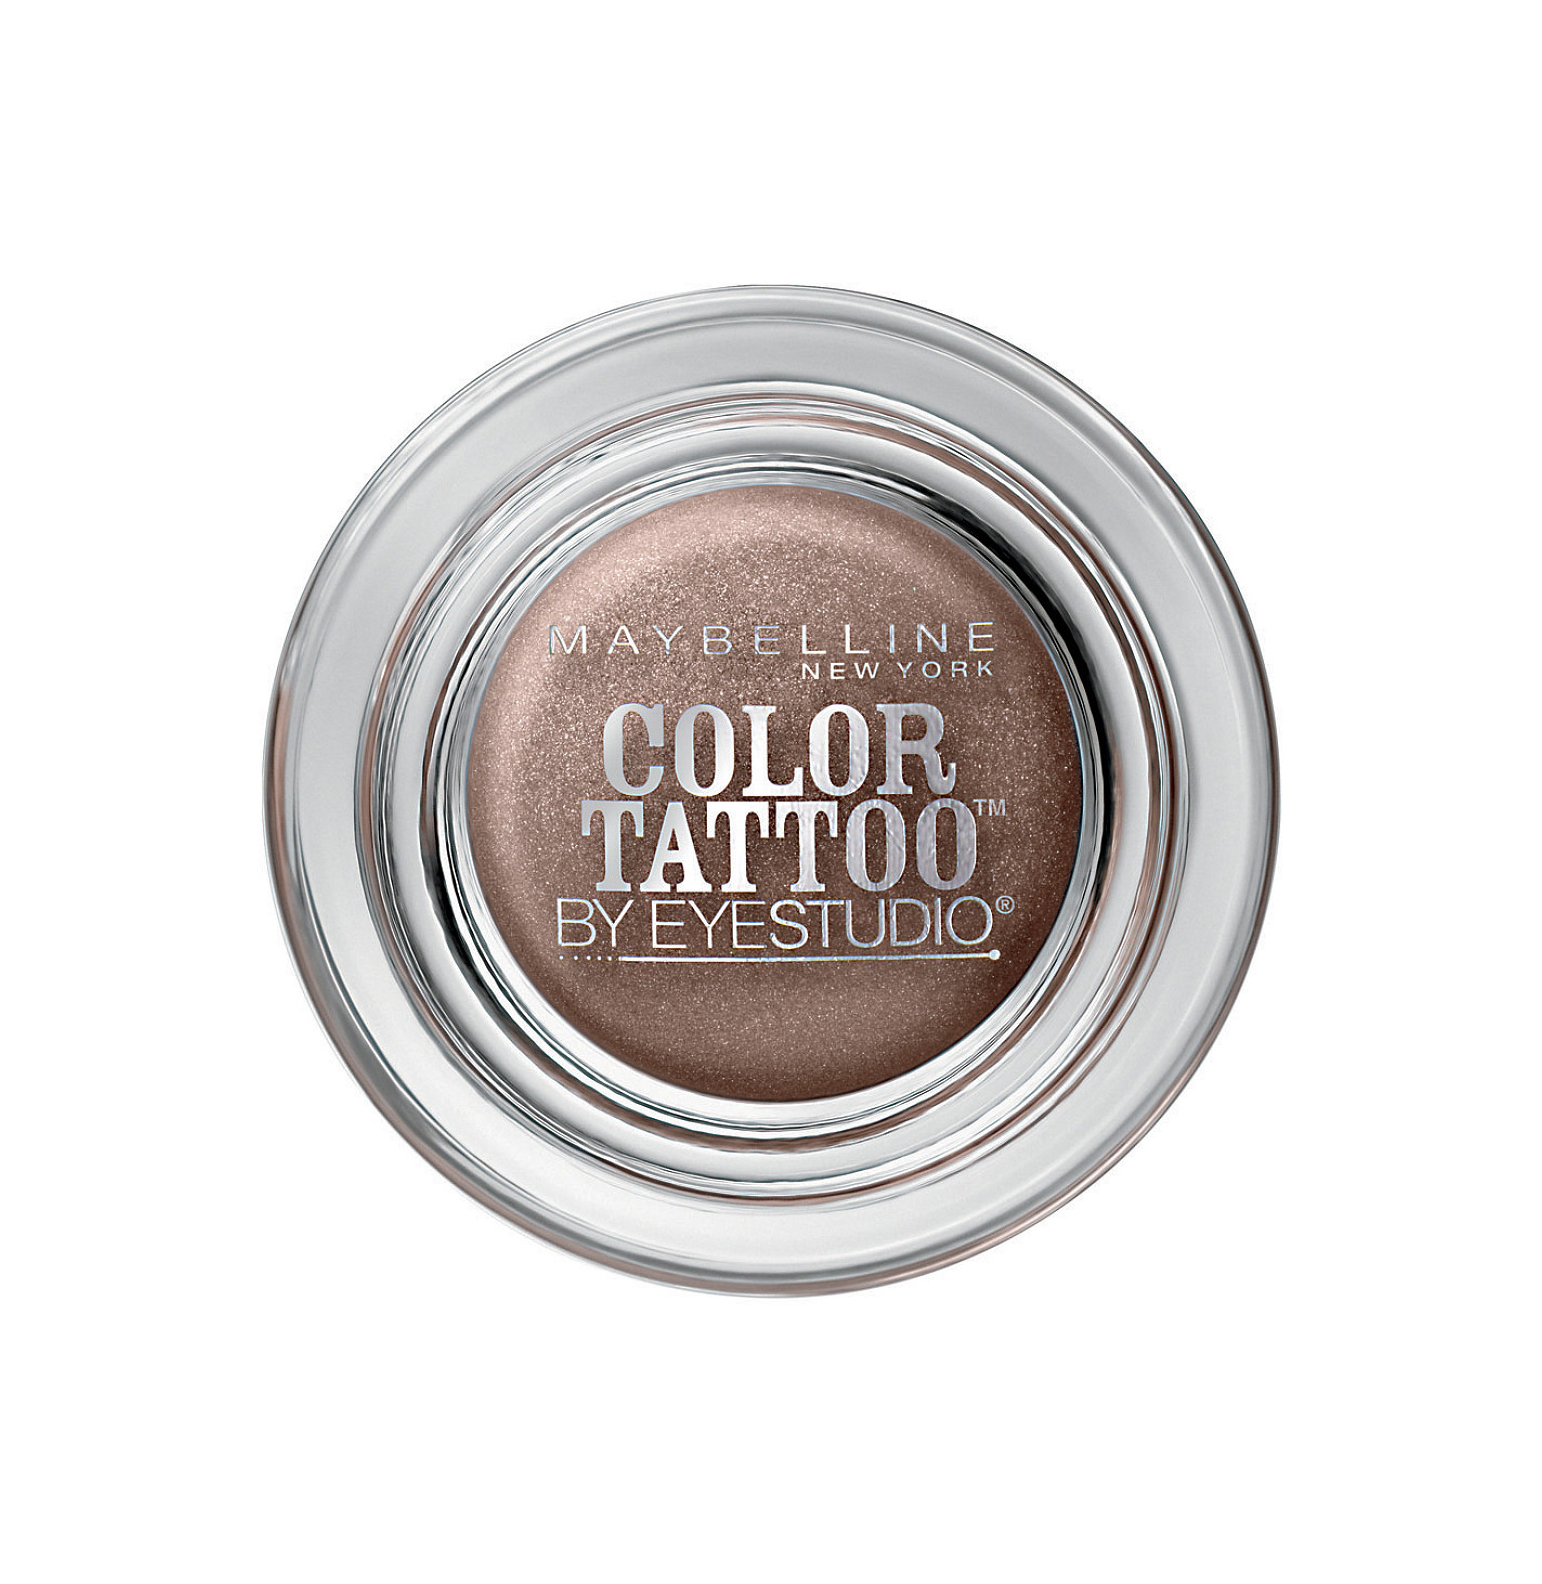 Gilded Lids: Maybelline Eye Studio Color Tattoo Eyeshadow in Bad to the Bronze